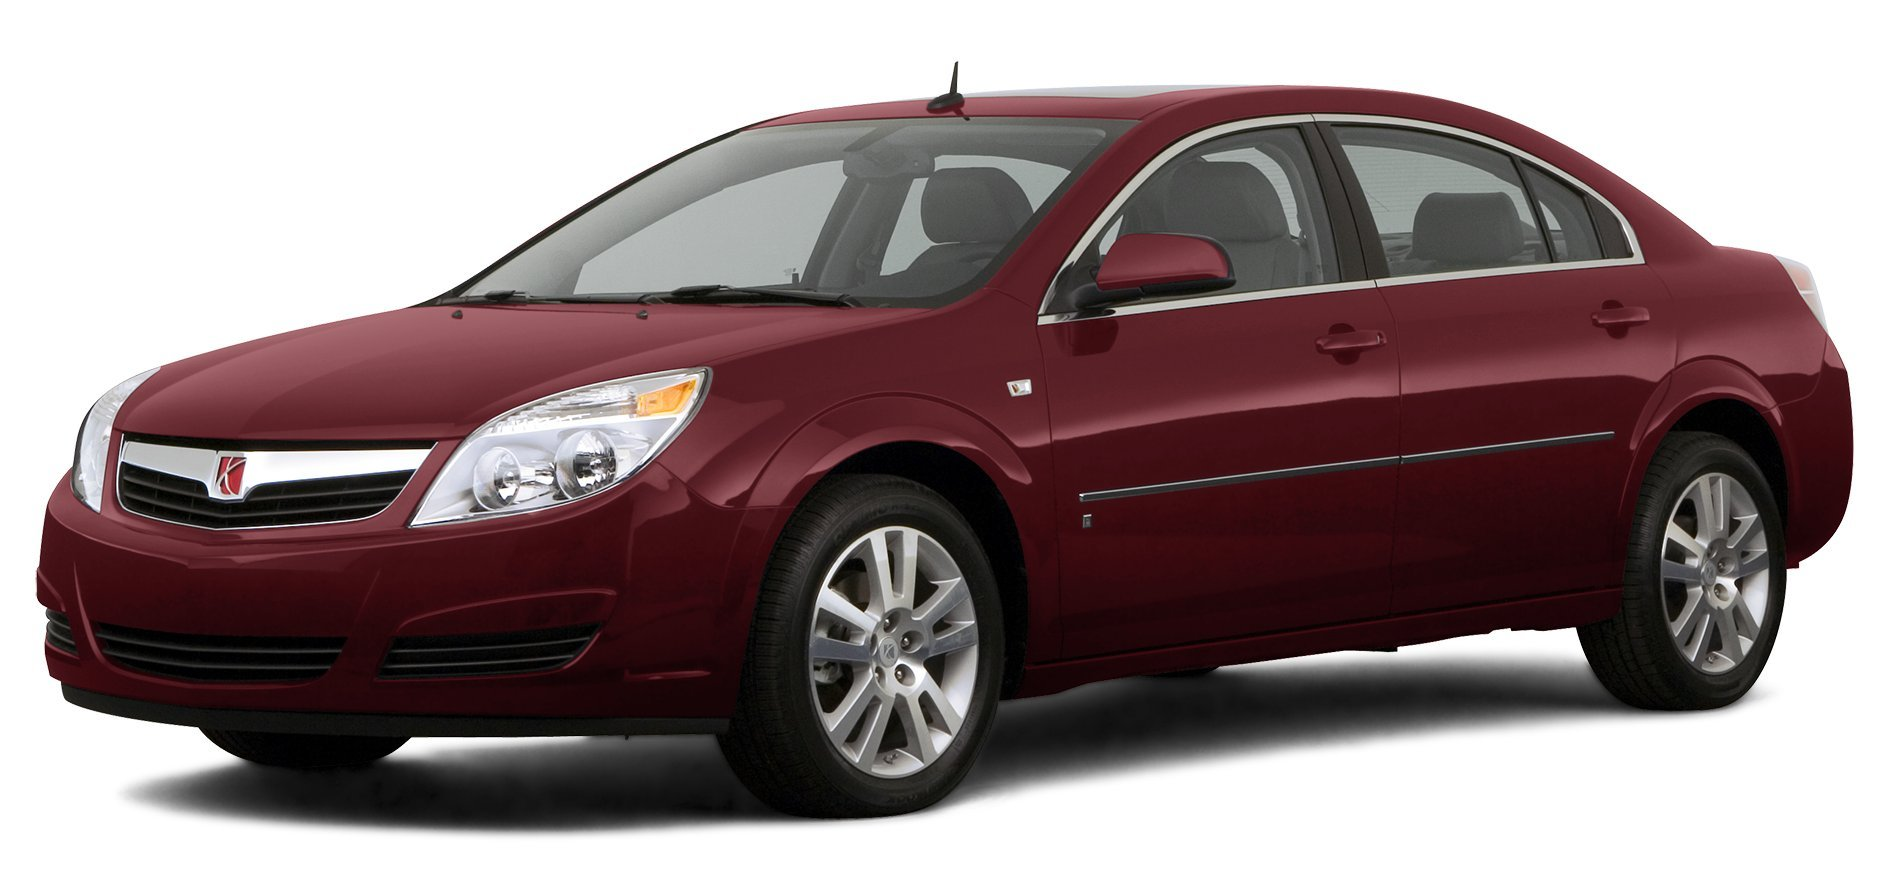 2007 Saturn Aura Reviews Images And Specs Vehicles 1930 Model A Wiring Harness Green Line 4 Door Sedan Ford